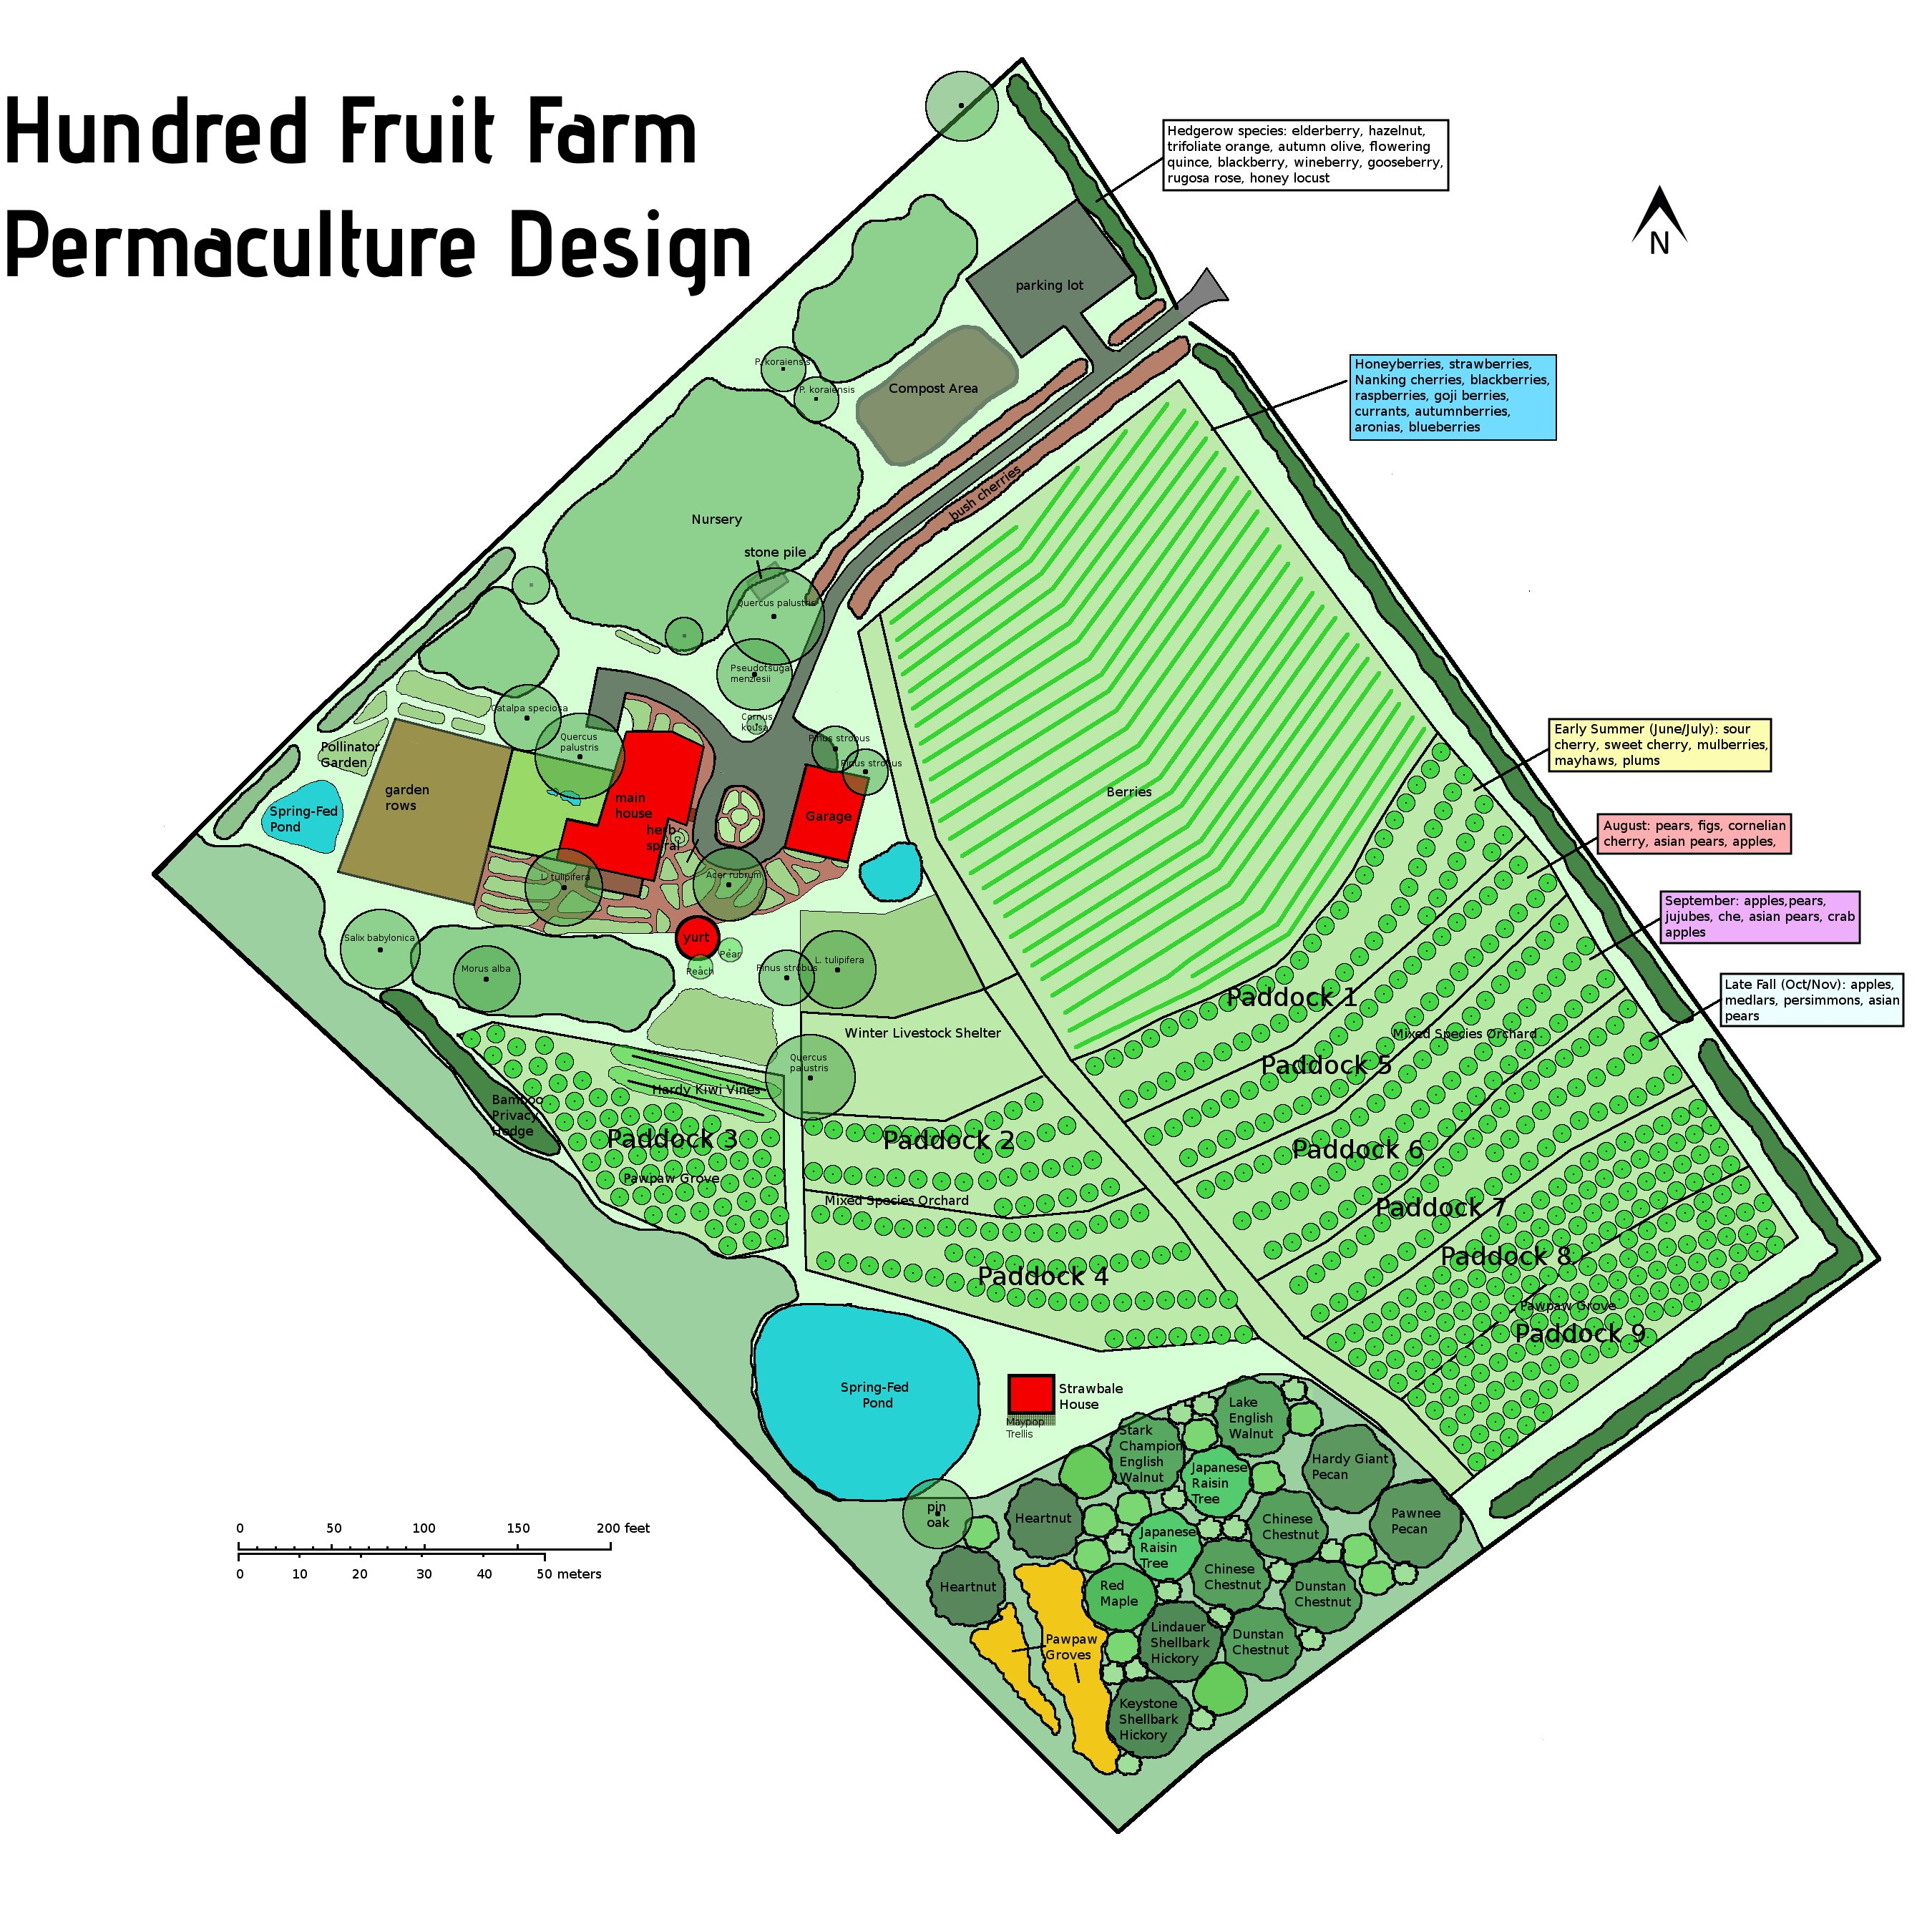 Old Design for Hundred Fruit Farm